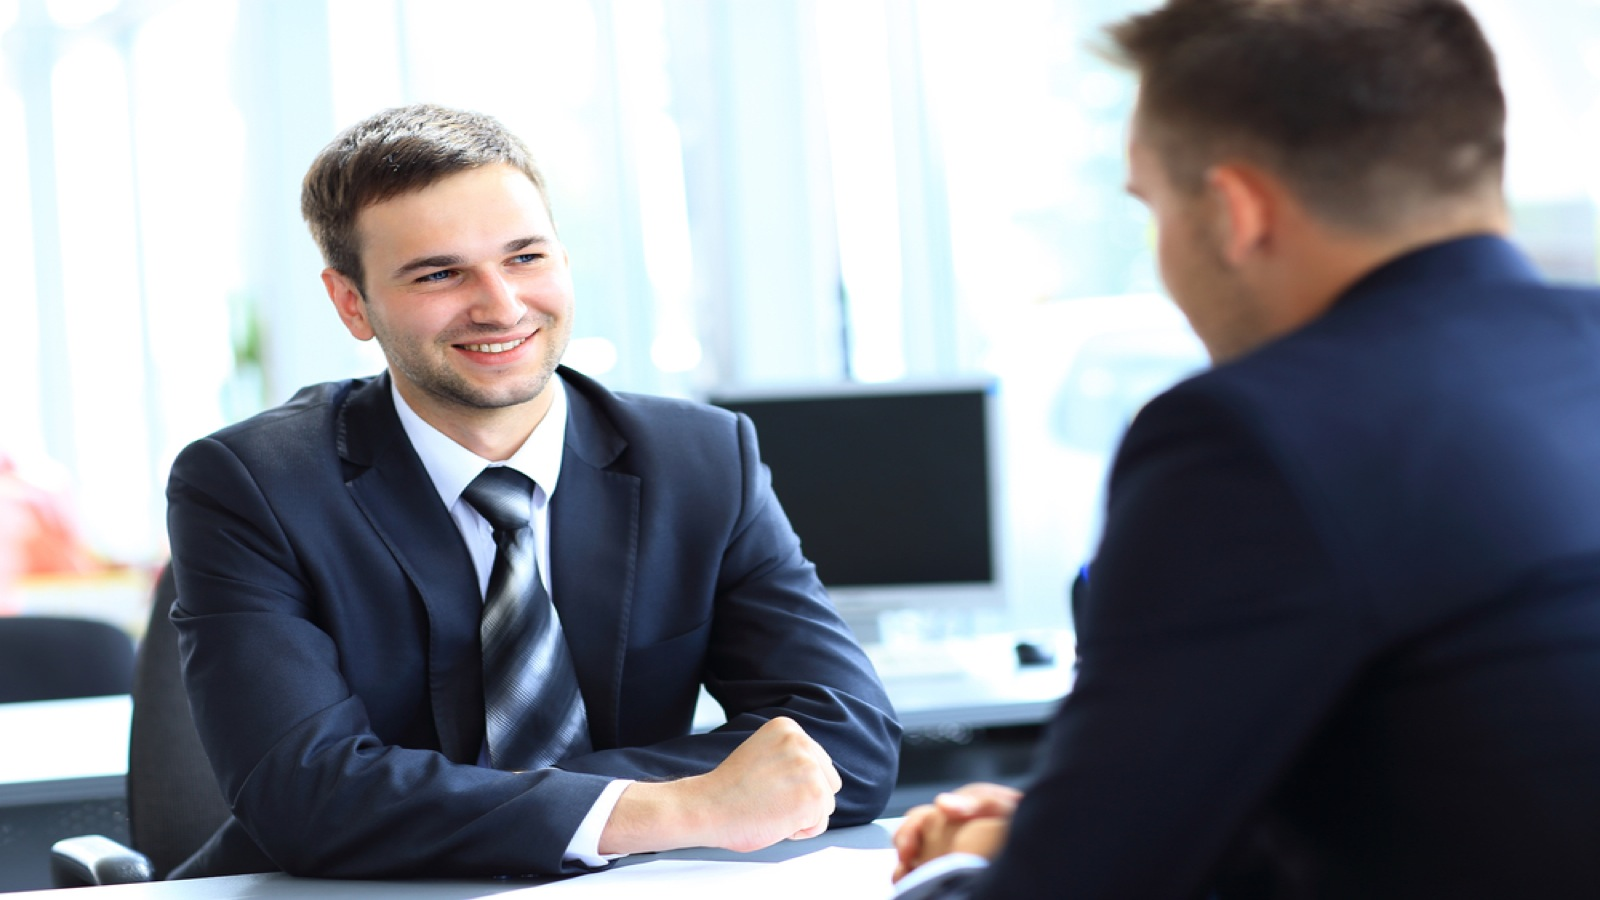 Expert Advice 9 Tips to Nail an InPerson Interview